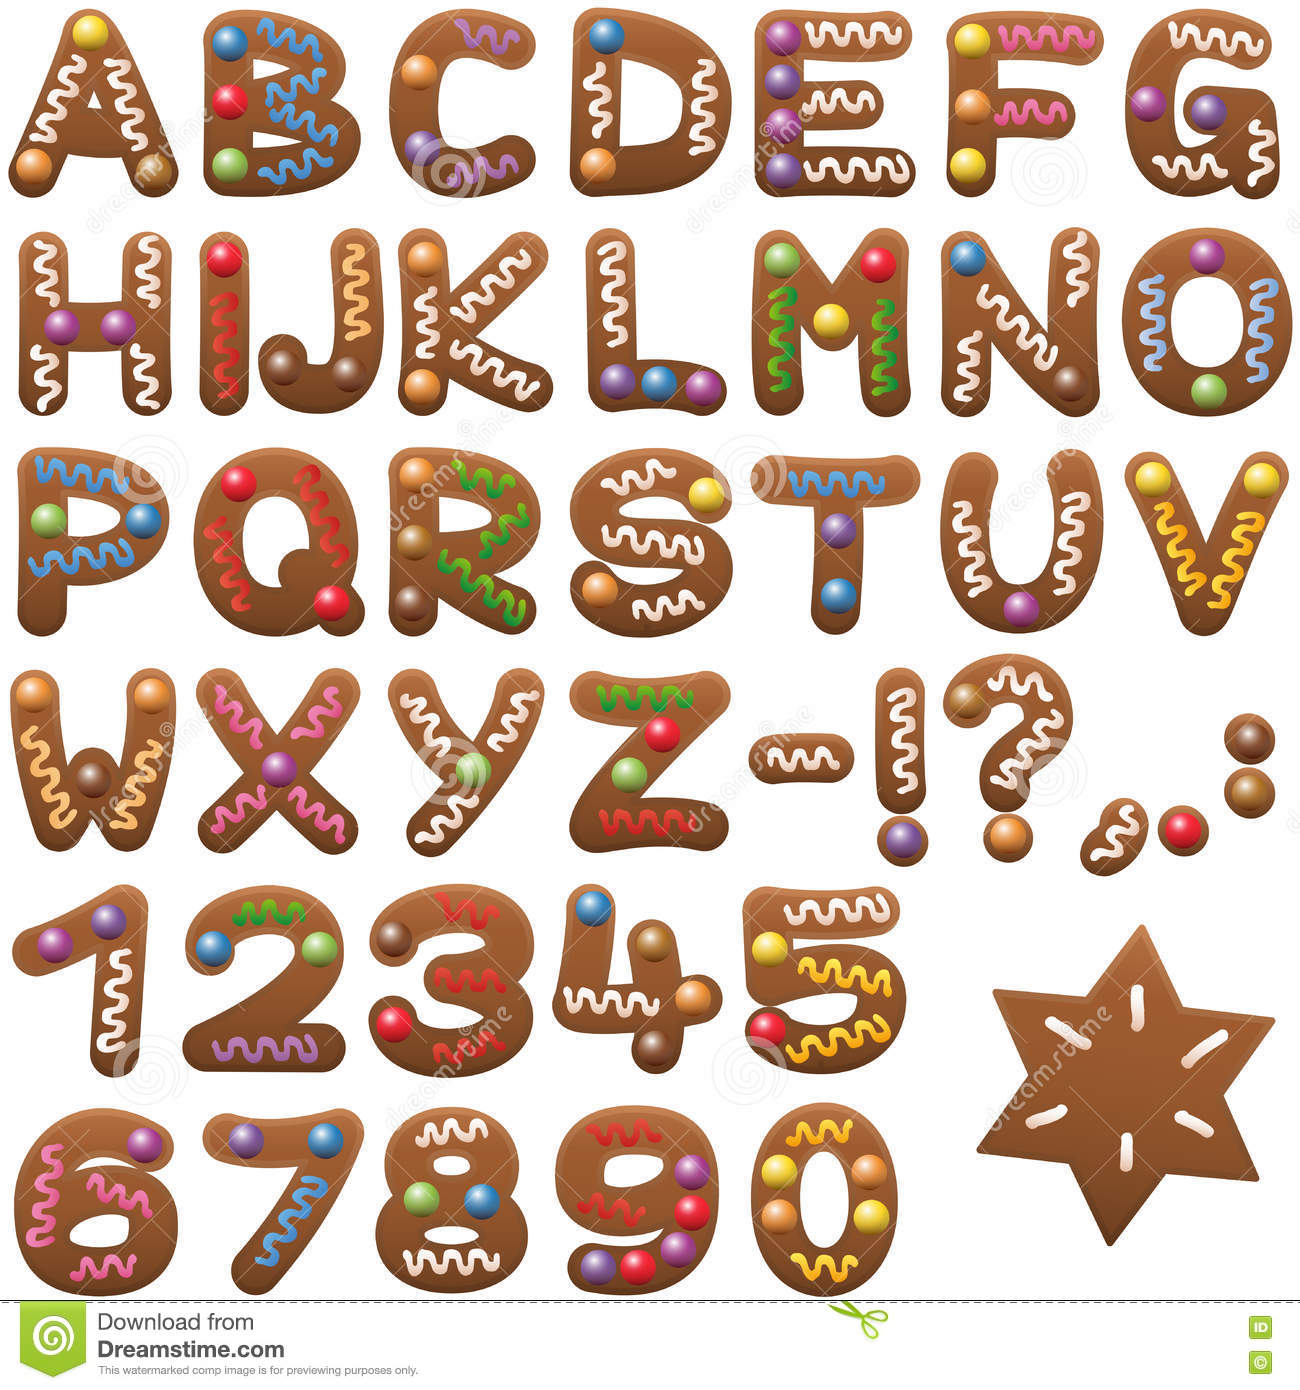 Gingerbread alphabet letter g clipart clipart freeuse download Gingerbread Alphabet Letters Font Stock Vector - Image: 80218083 clipart freeuse download